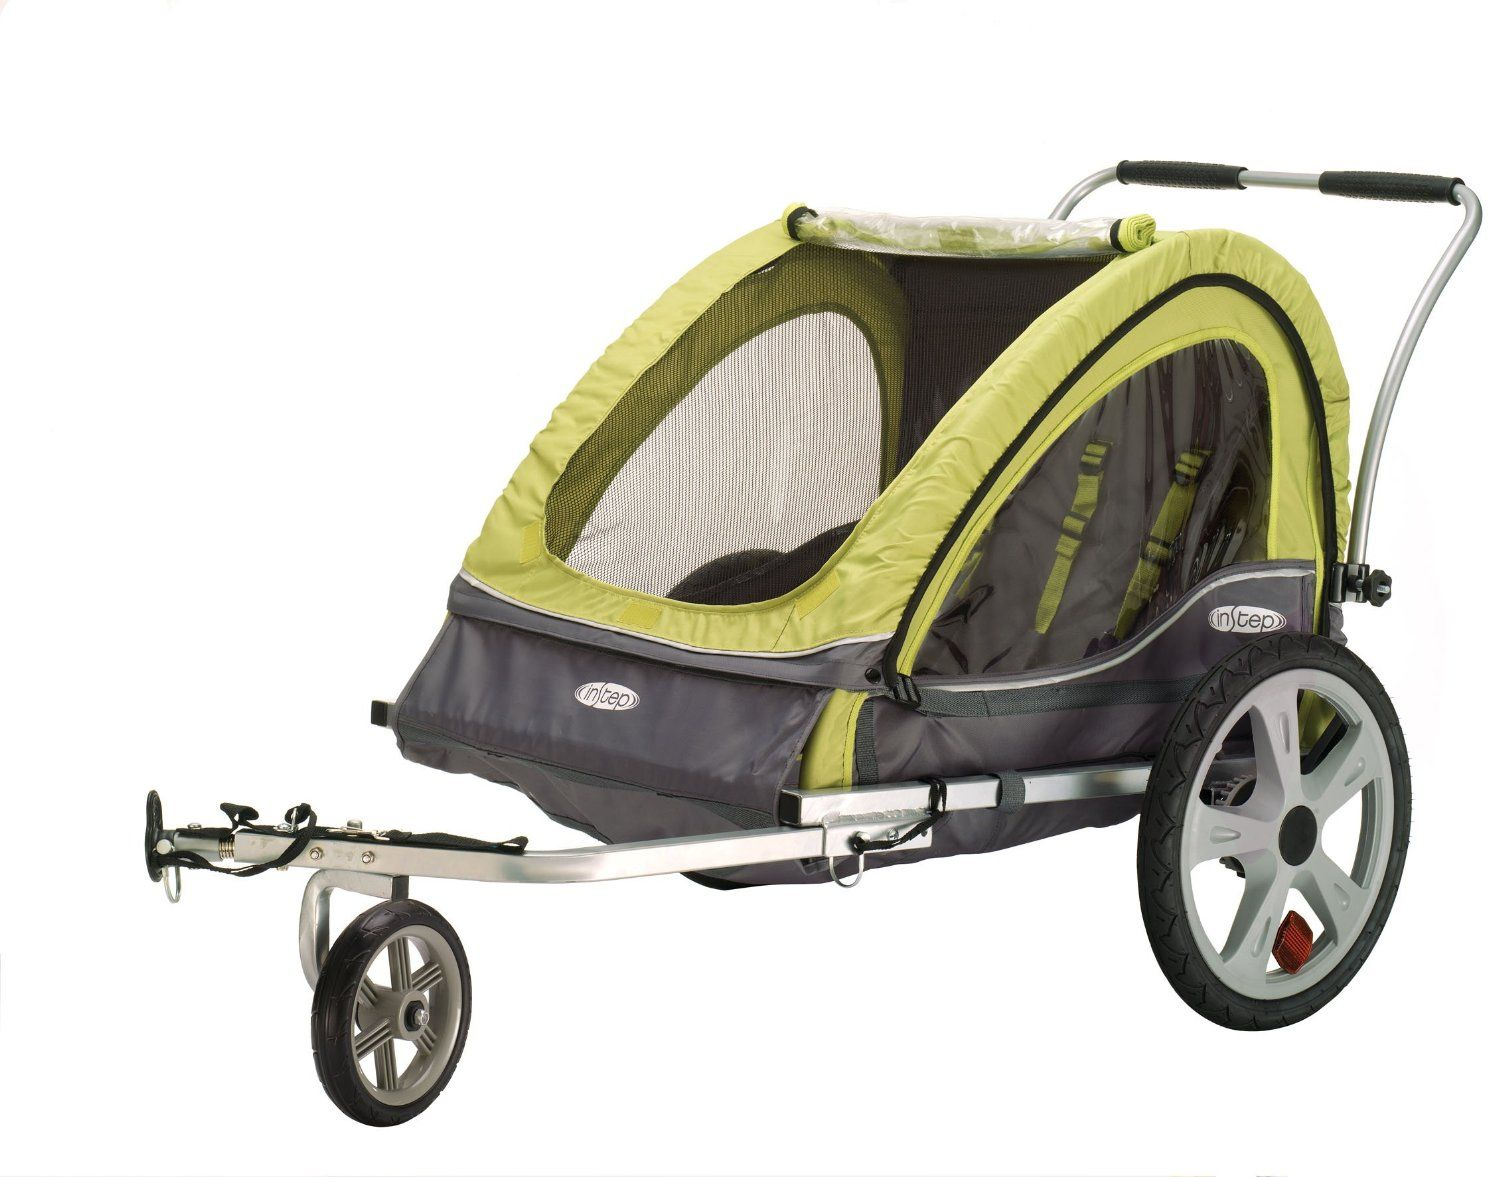 Instep Sierra Double Bicycle Trailer Review Instep Bike Trailer